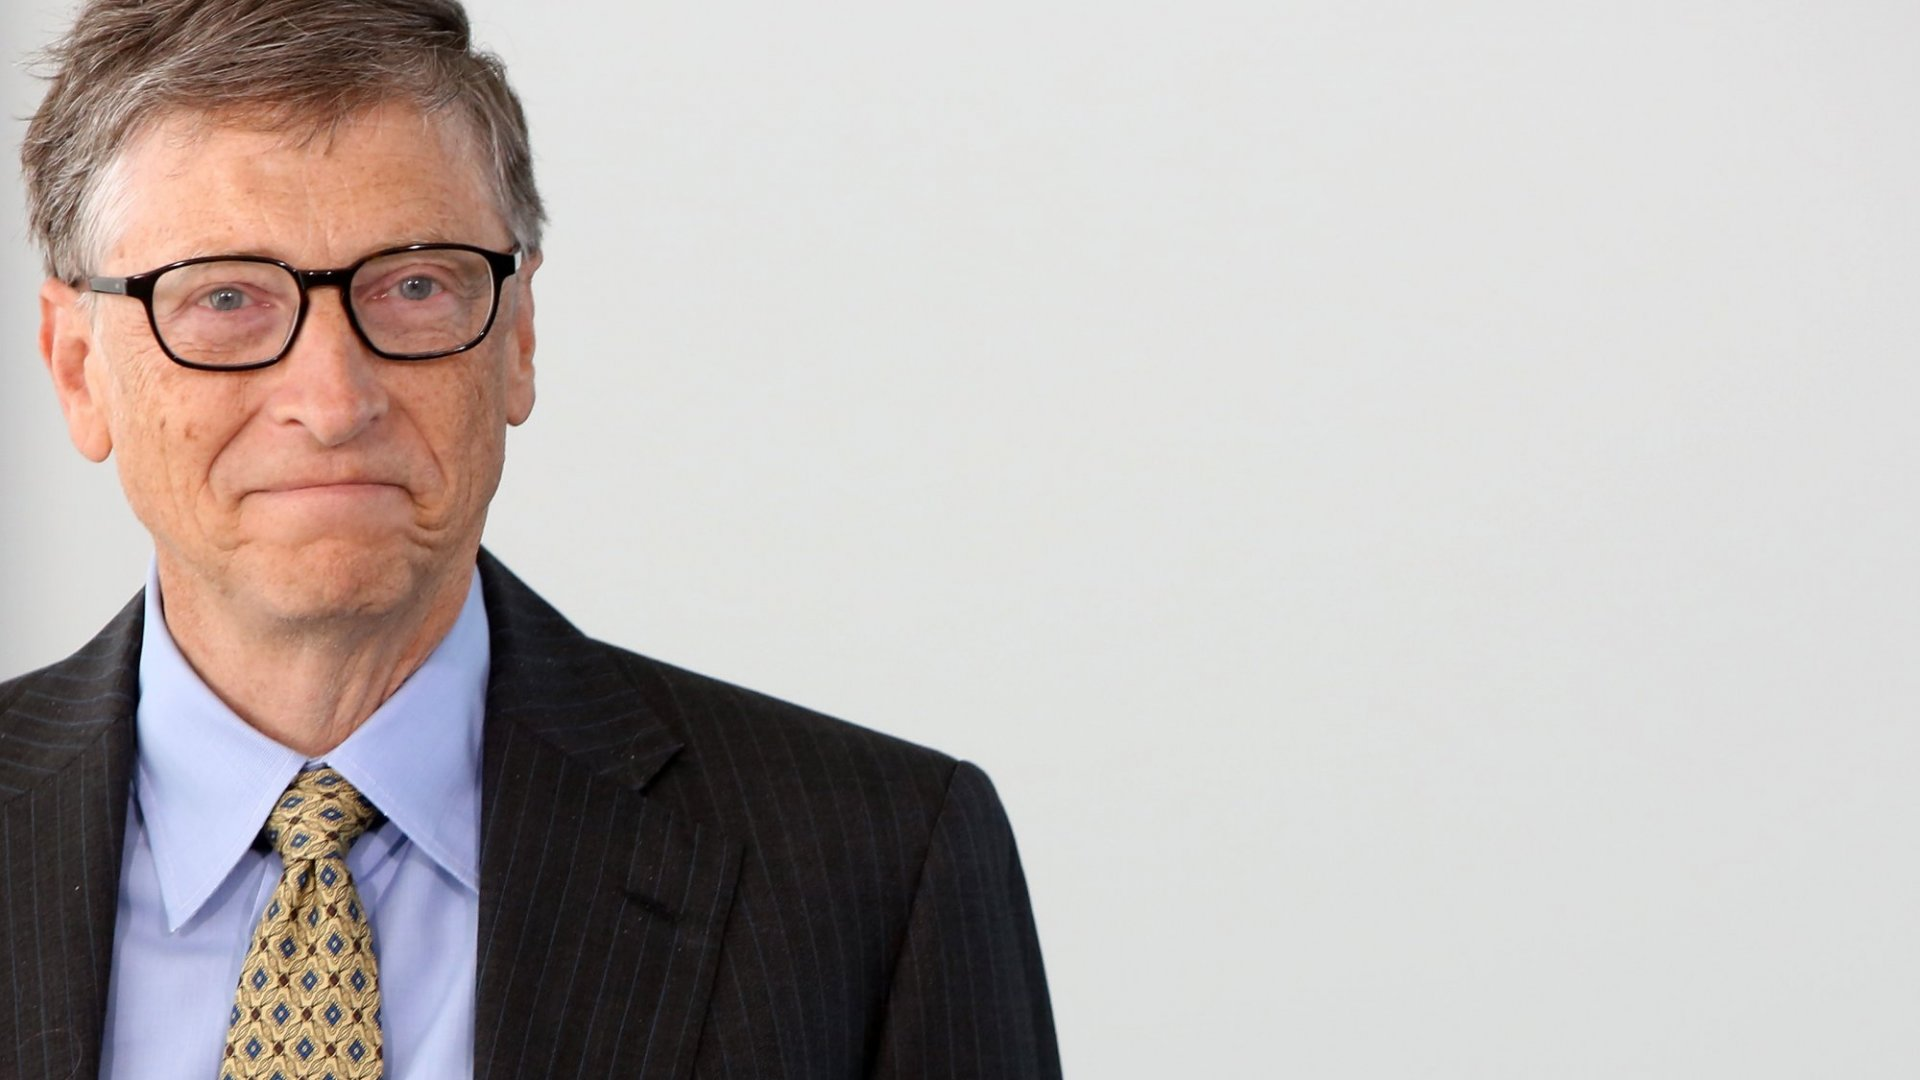 Too Stressed About the State of the World to Relax This Summer? Bill Gates Says You Should Read These 5 Books